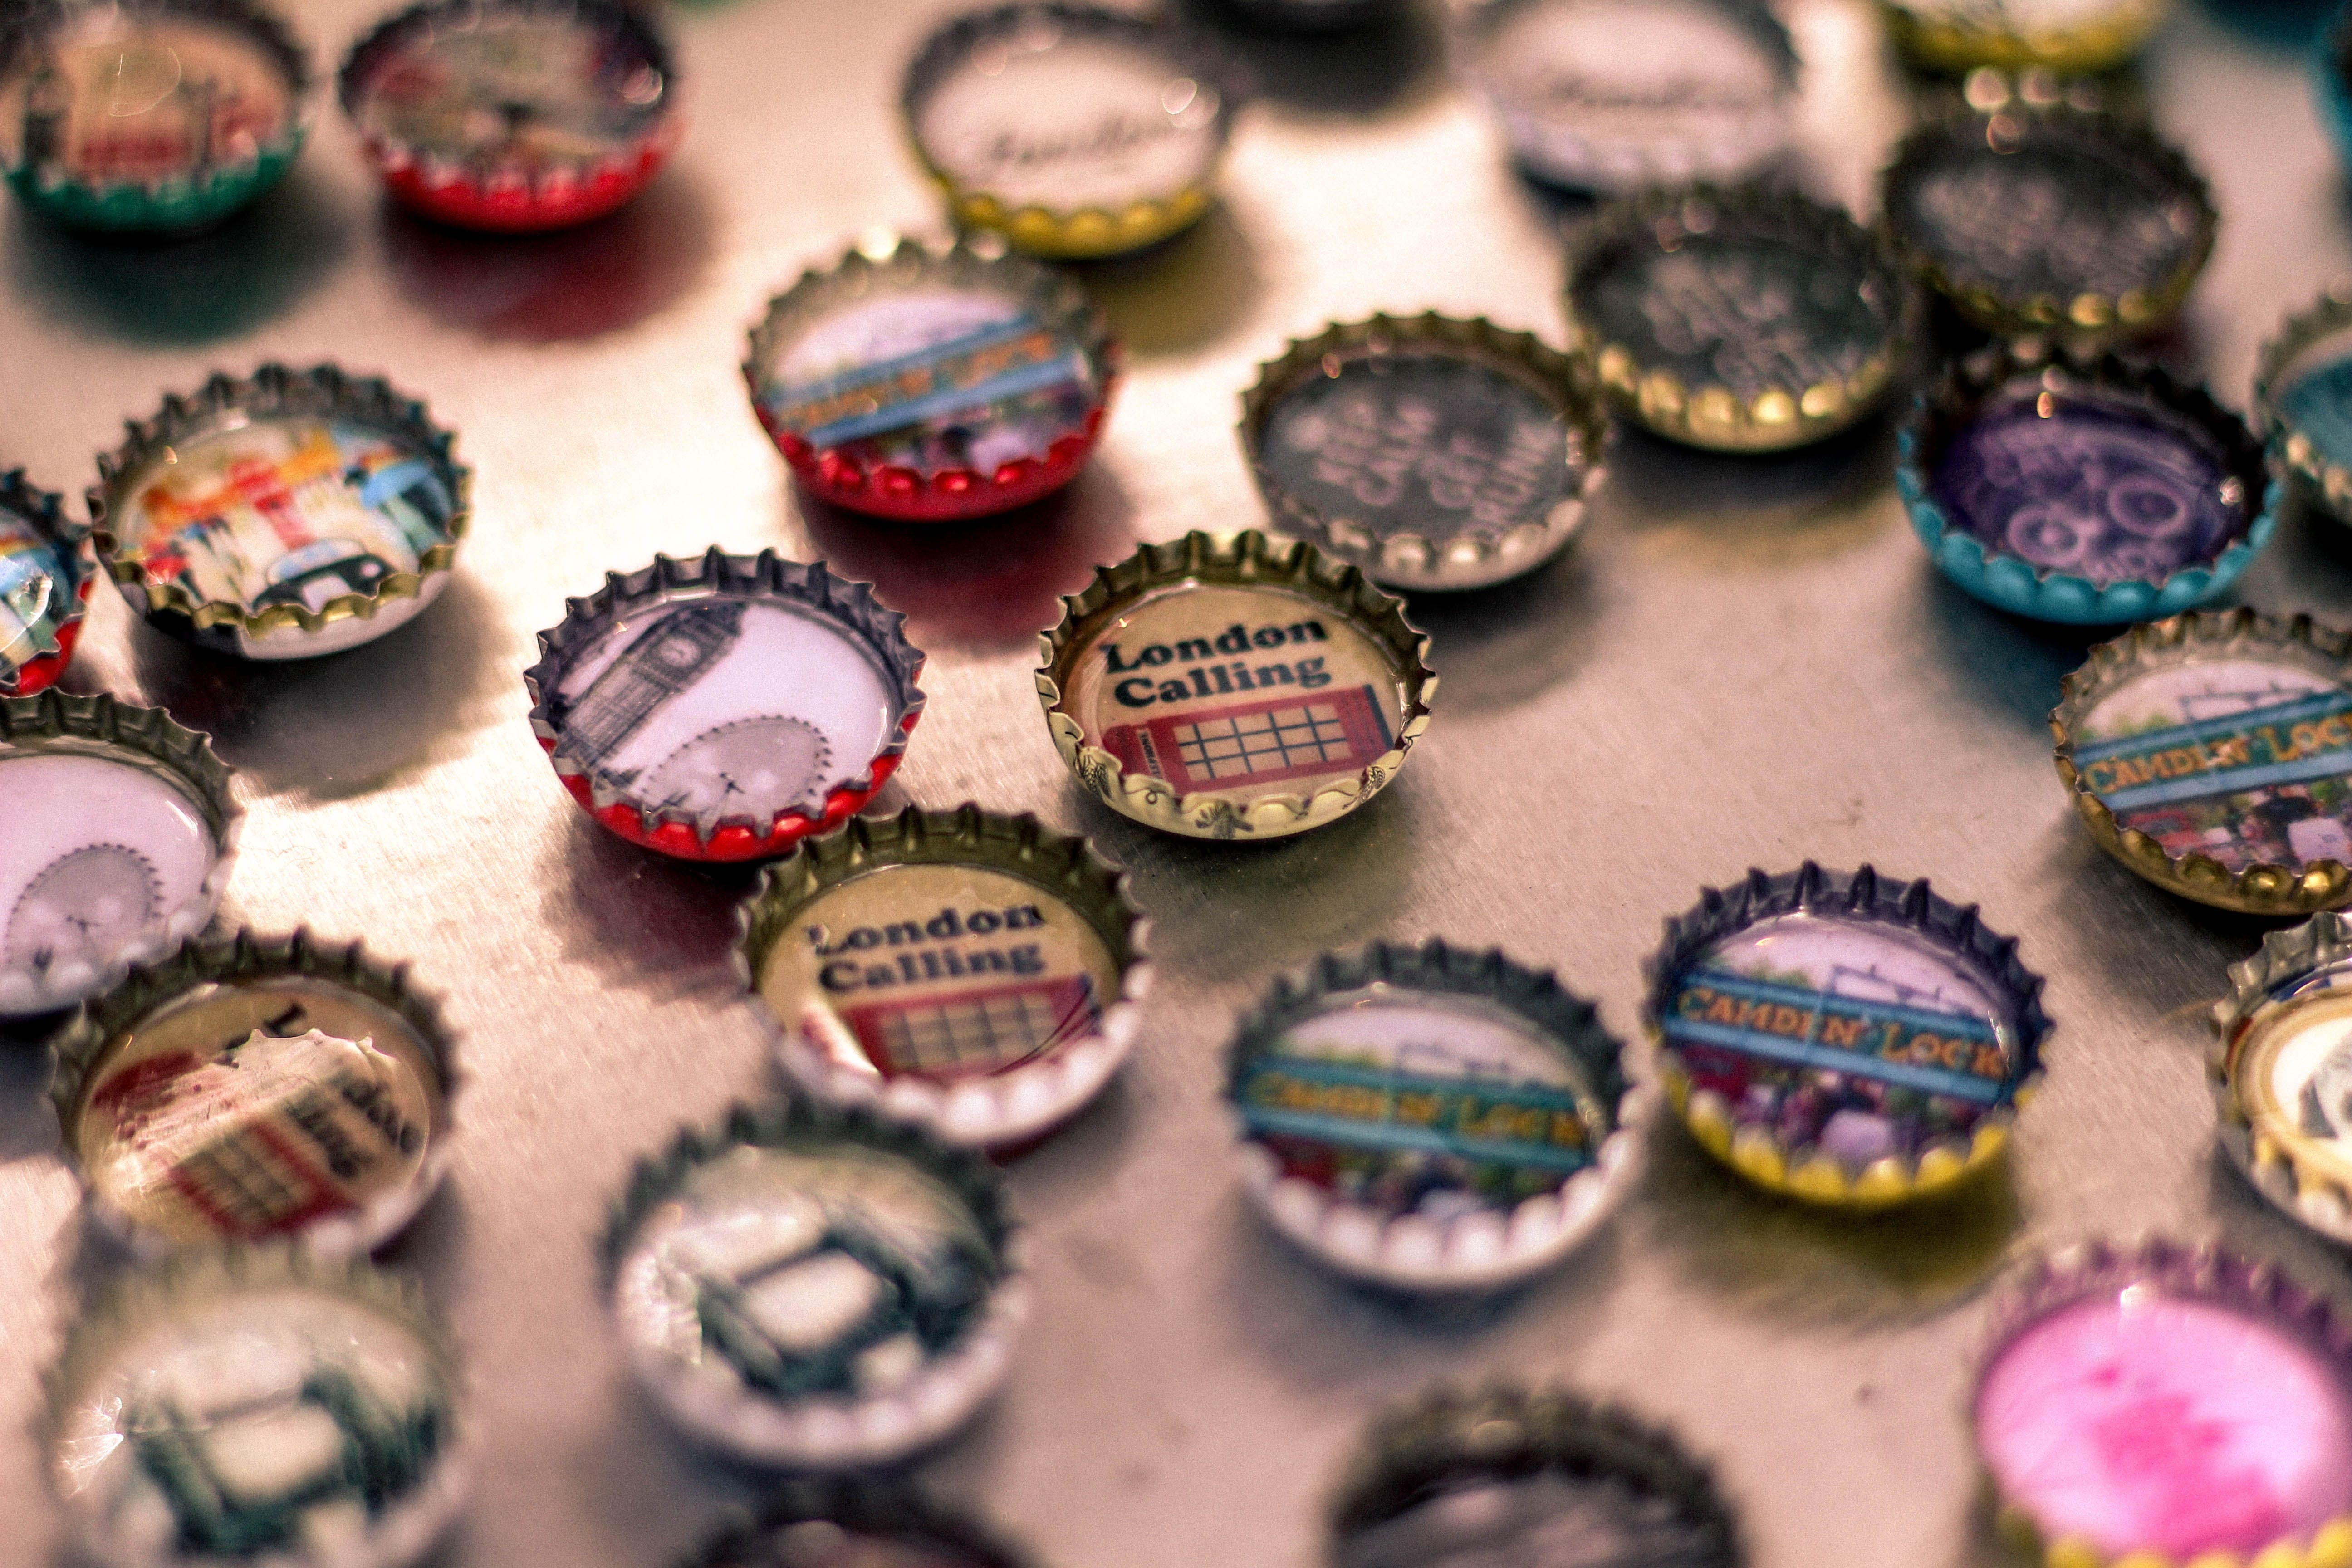 Free stock photo of design, decoration, london, bottle caps